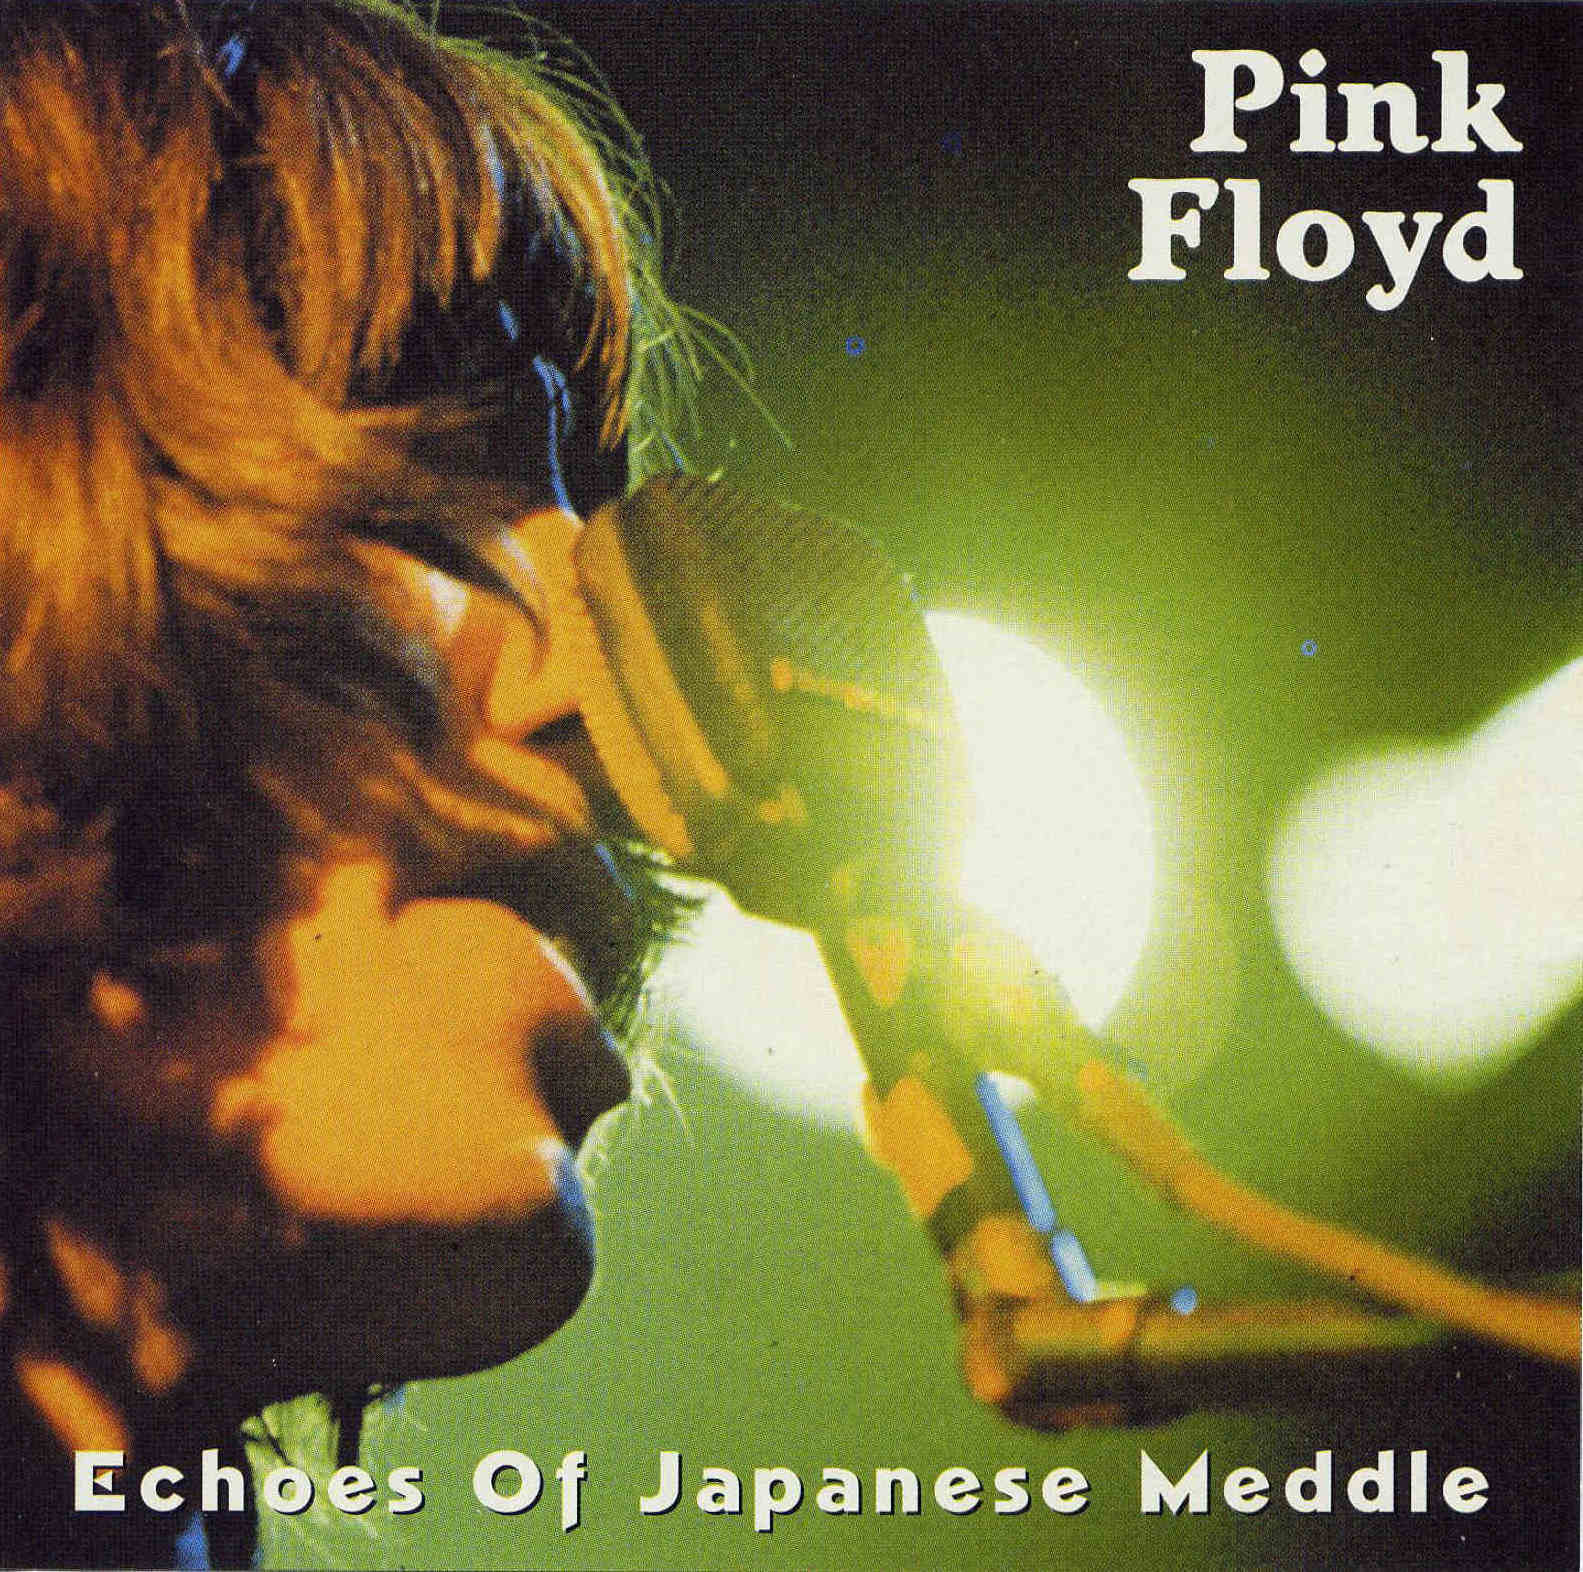 Pink Floyd Meddle Echoes Youtube